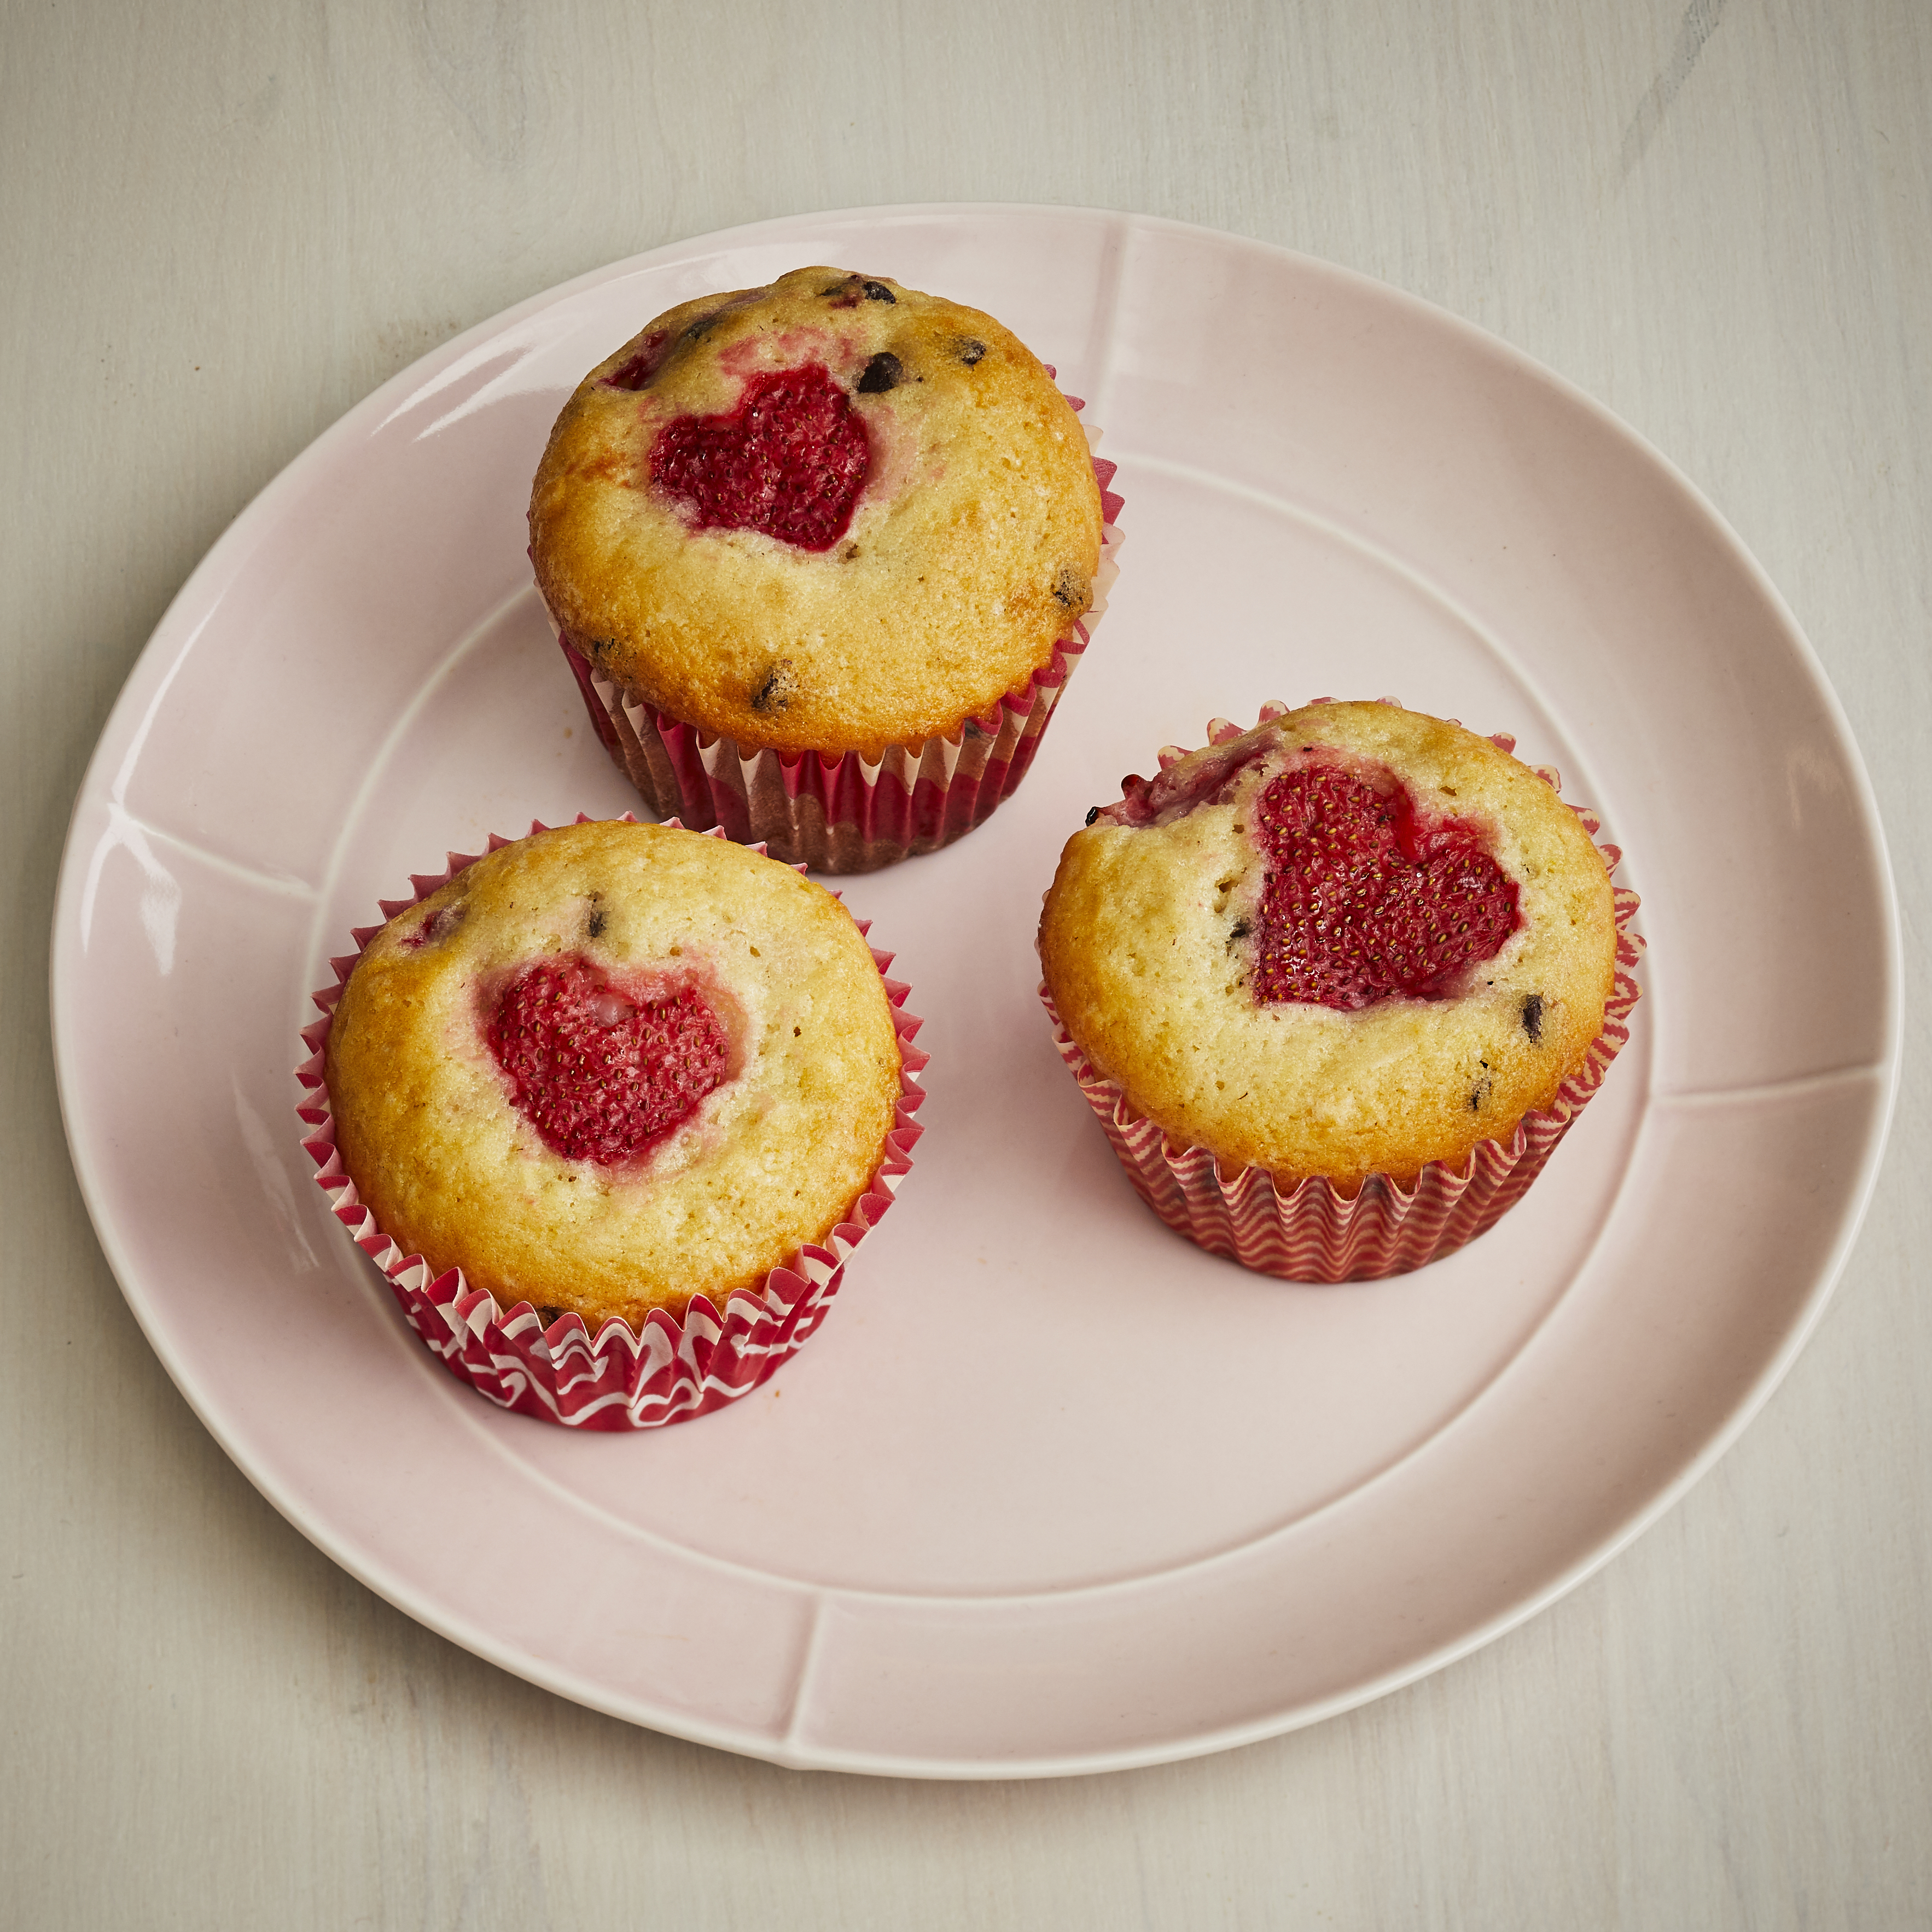 Valentine's Day Strawberry Muffins Trusted Brands